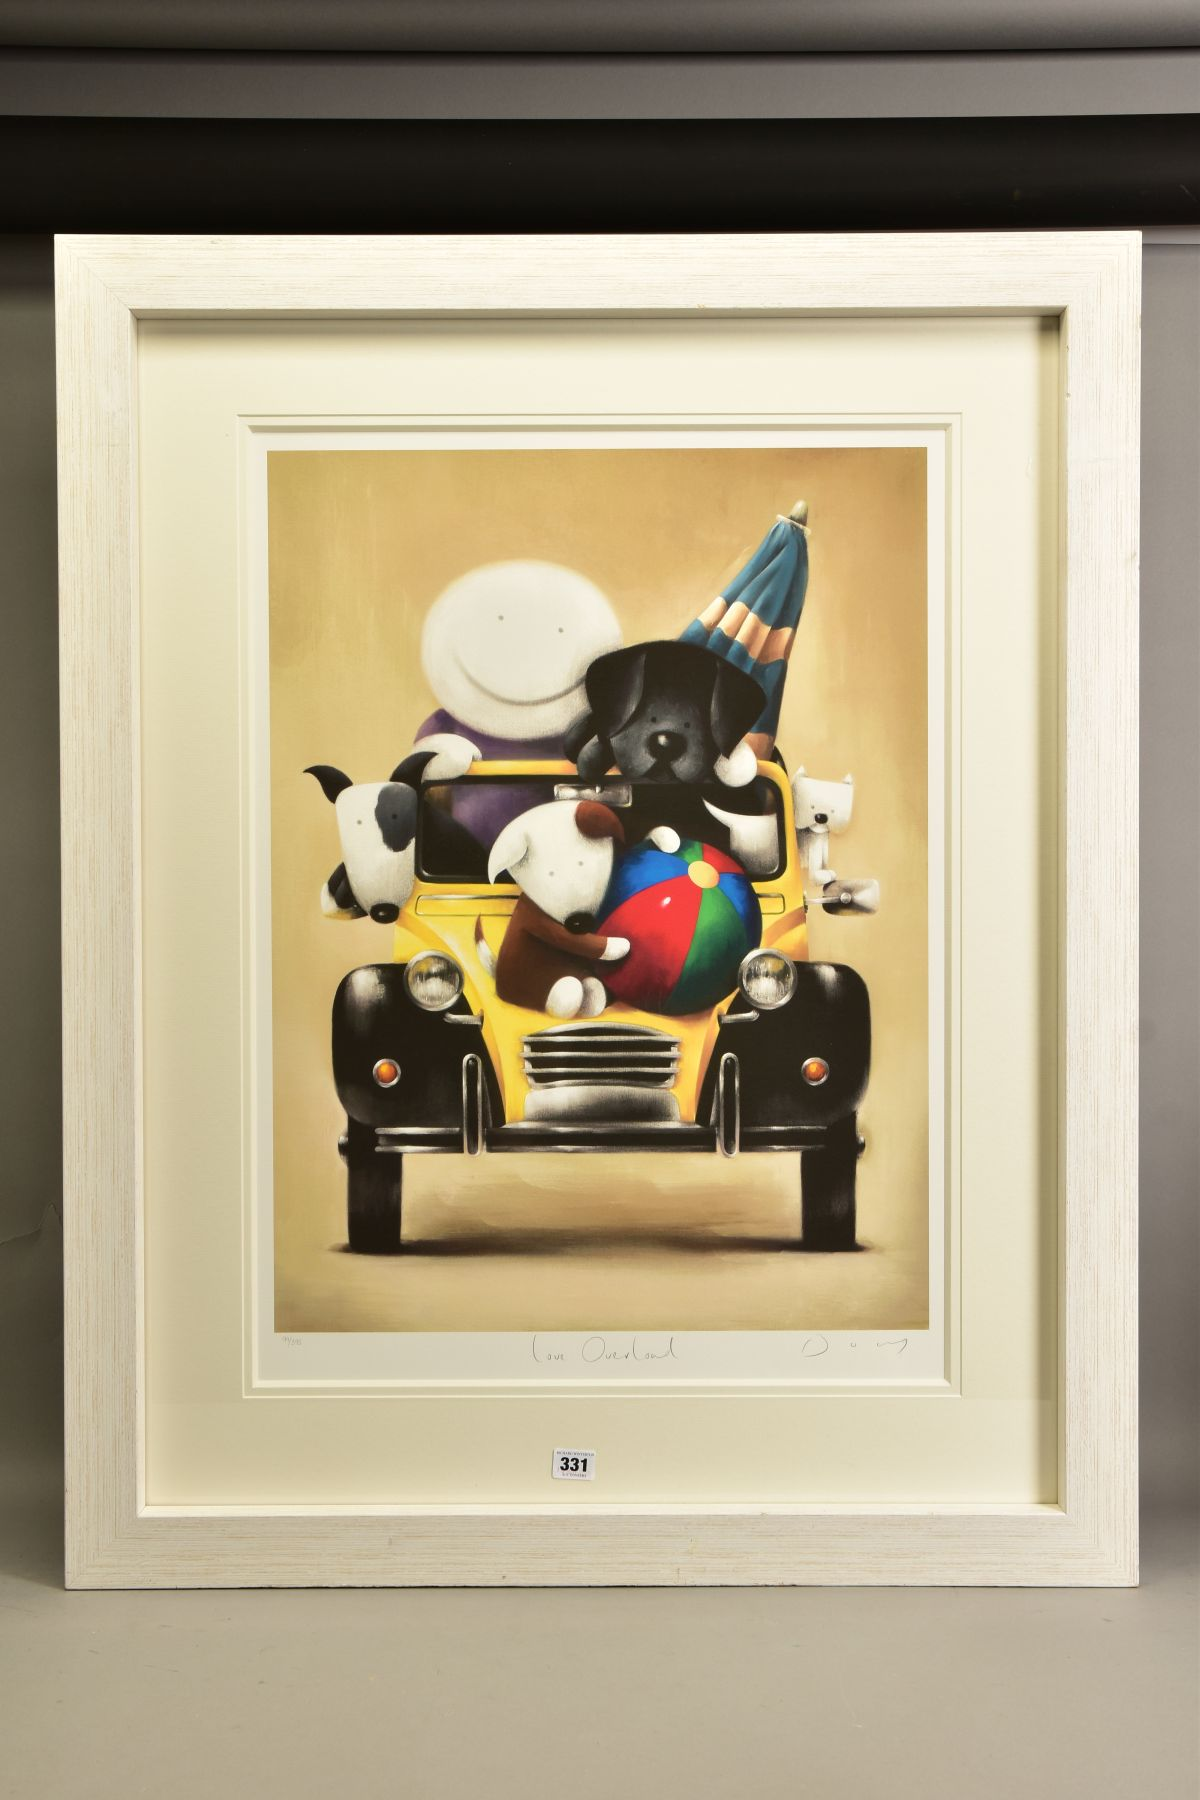 DOUG HYDE (BRITISH 1972) ' LOVE OVERLOAD', a boy and his pets in a Citroen 2CV, limited edition